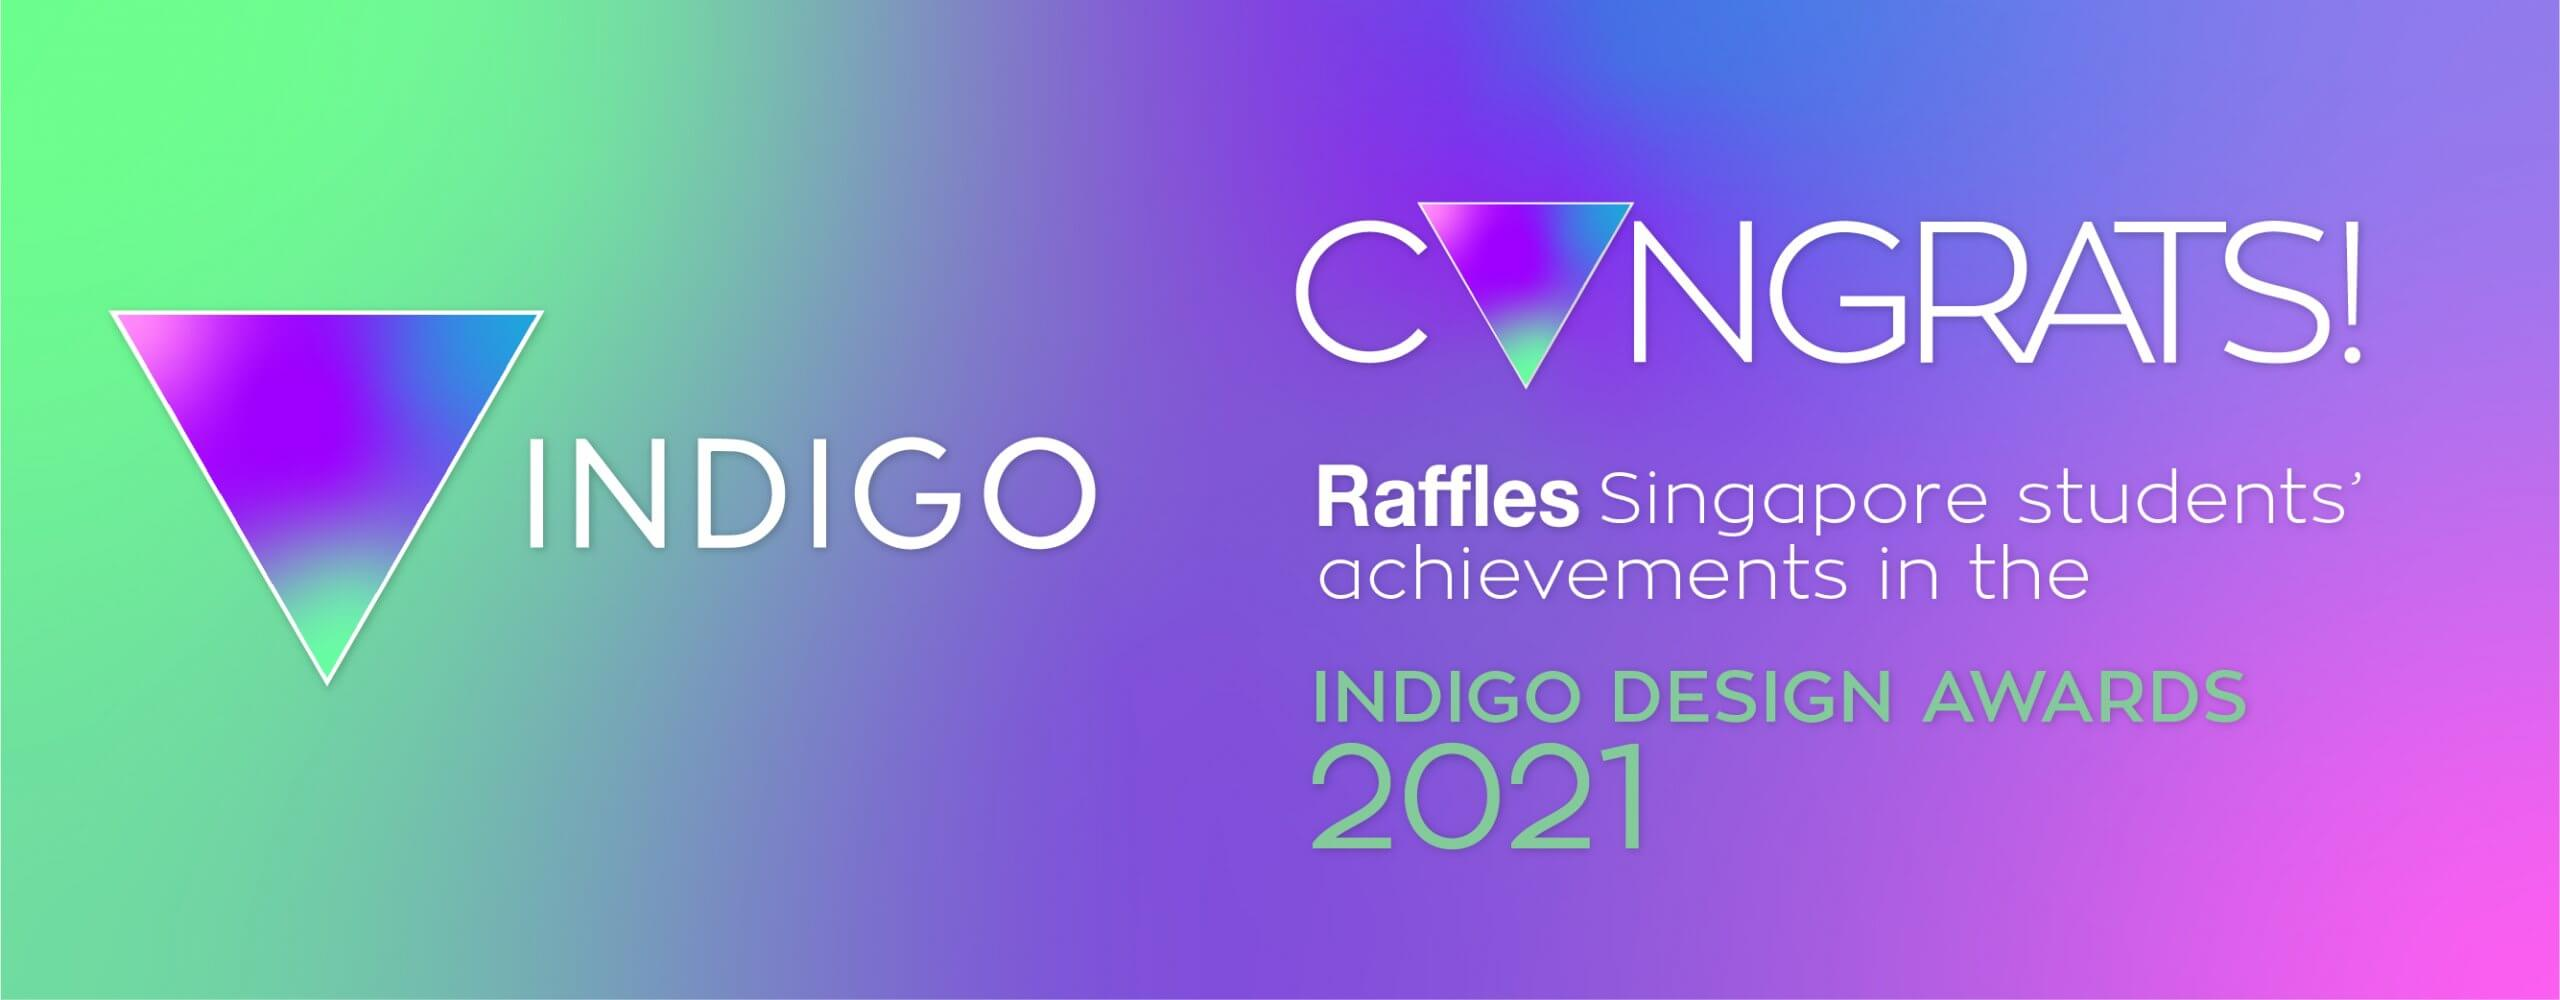 Indigo Design Award Award and collaboration Banner